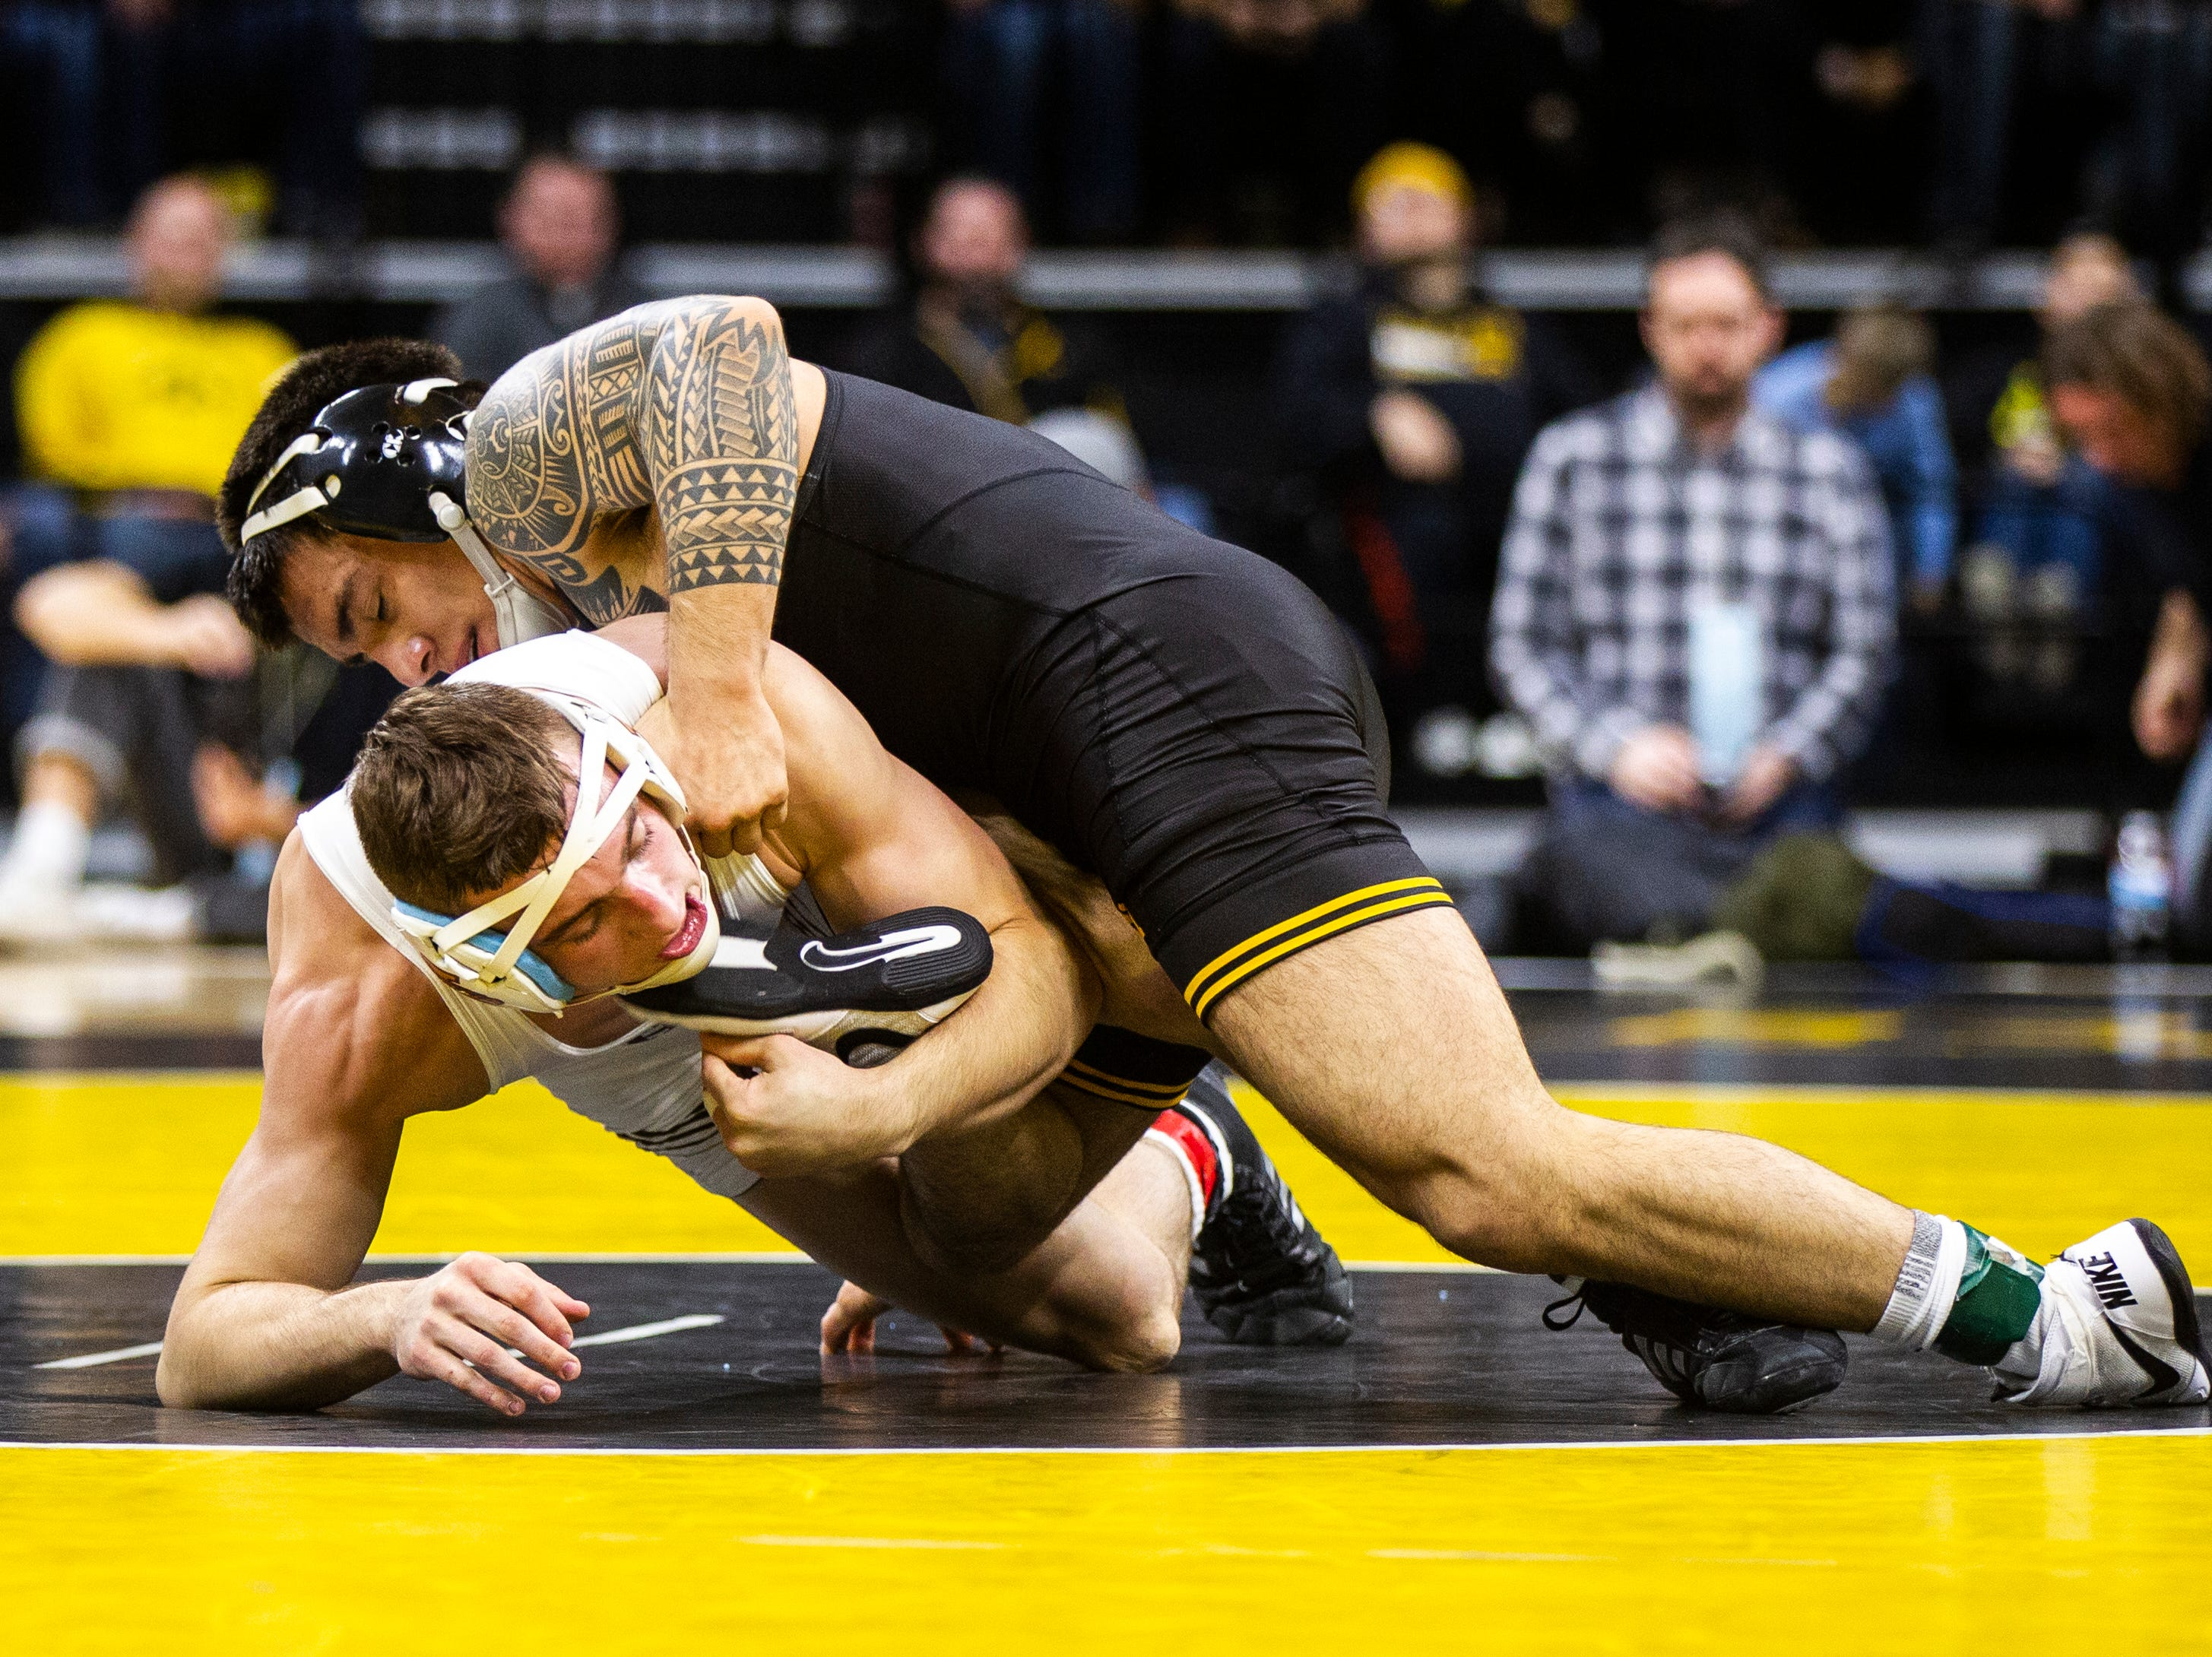 Iowa's Pat Lugo, right, wrestles Lehigh's Jimmy Hoffman at 149 during a NCAA wrestling dual on Saturday, Dec. 8, 2018, at Carver-Hawkeye Arena in Iowa City.